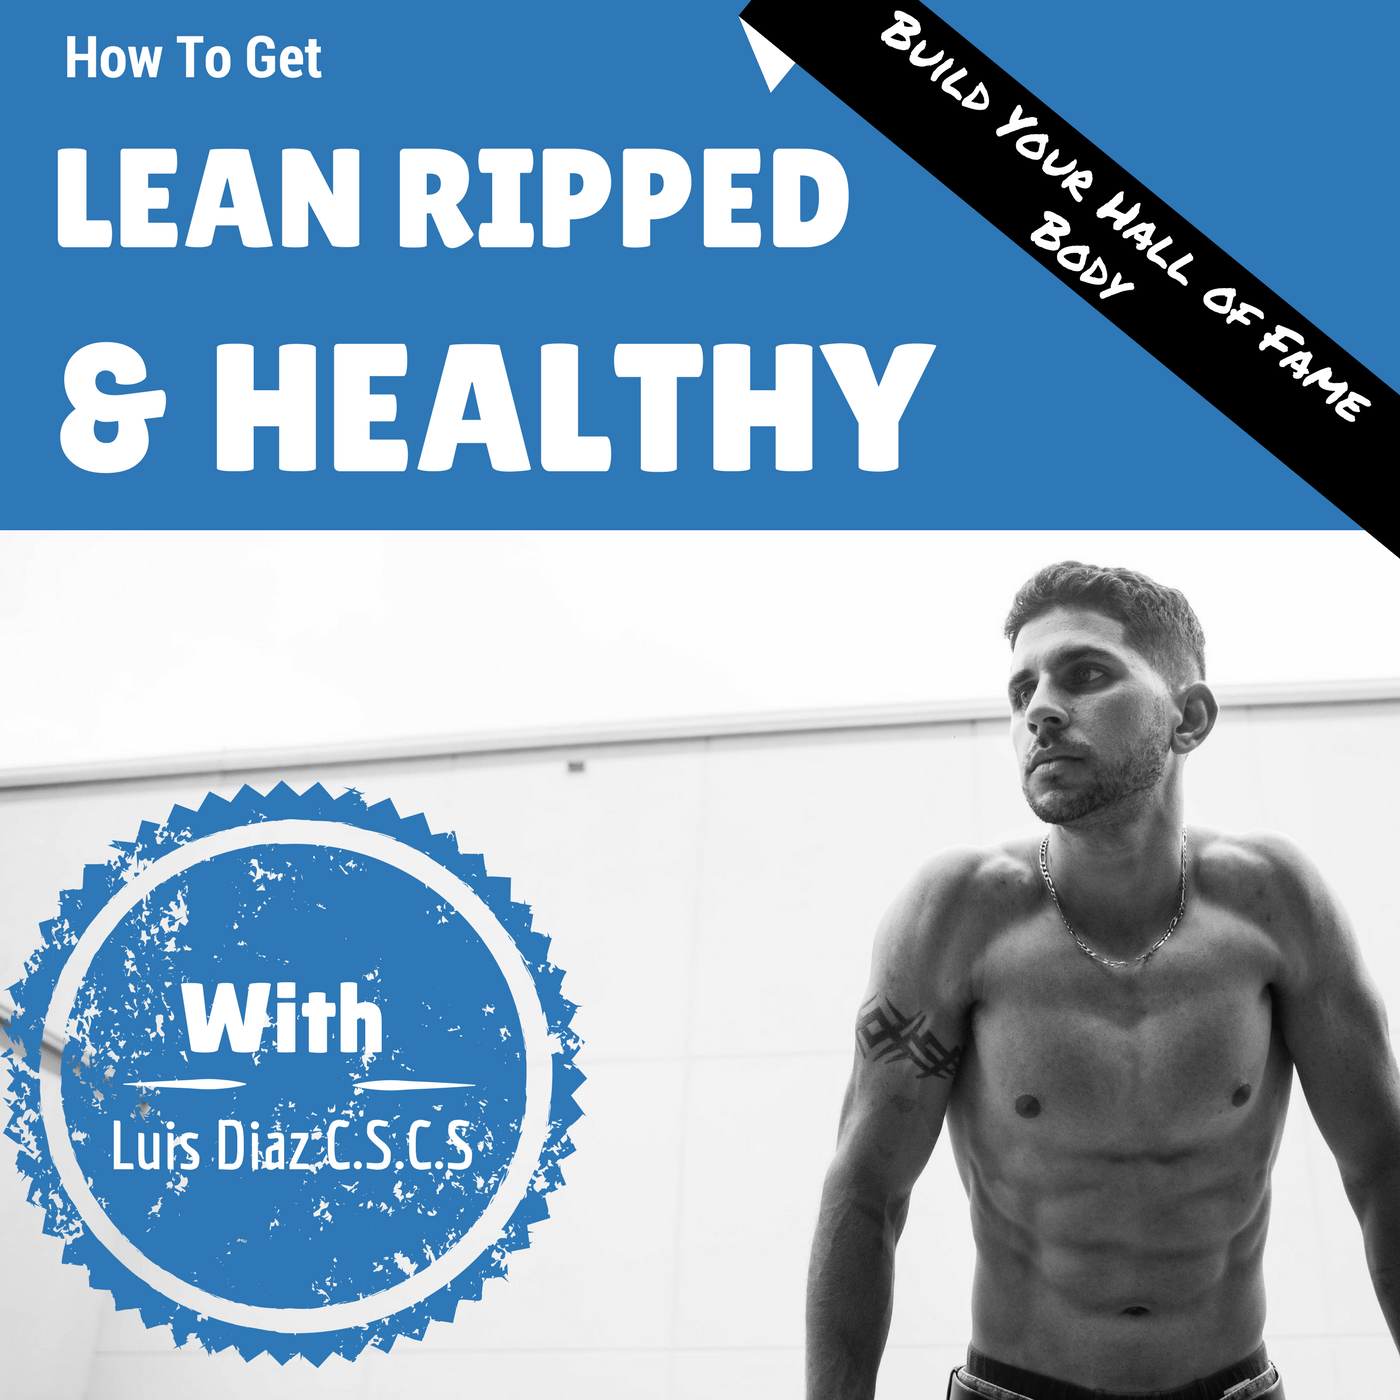 How To Get Lean Ripped and Healthy With Luis Diaz  logo